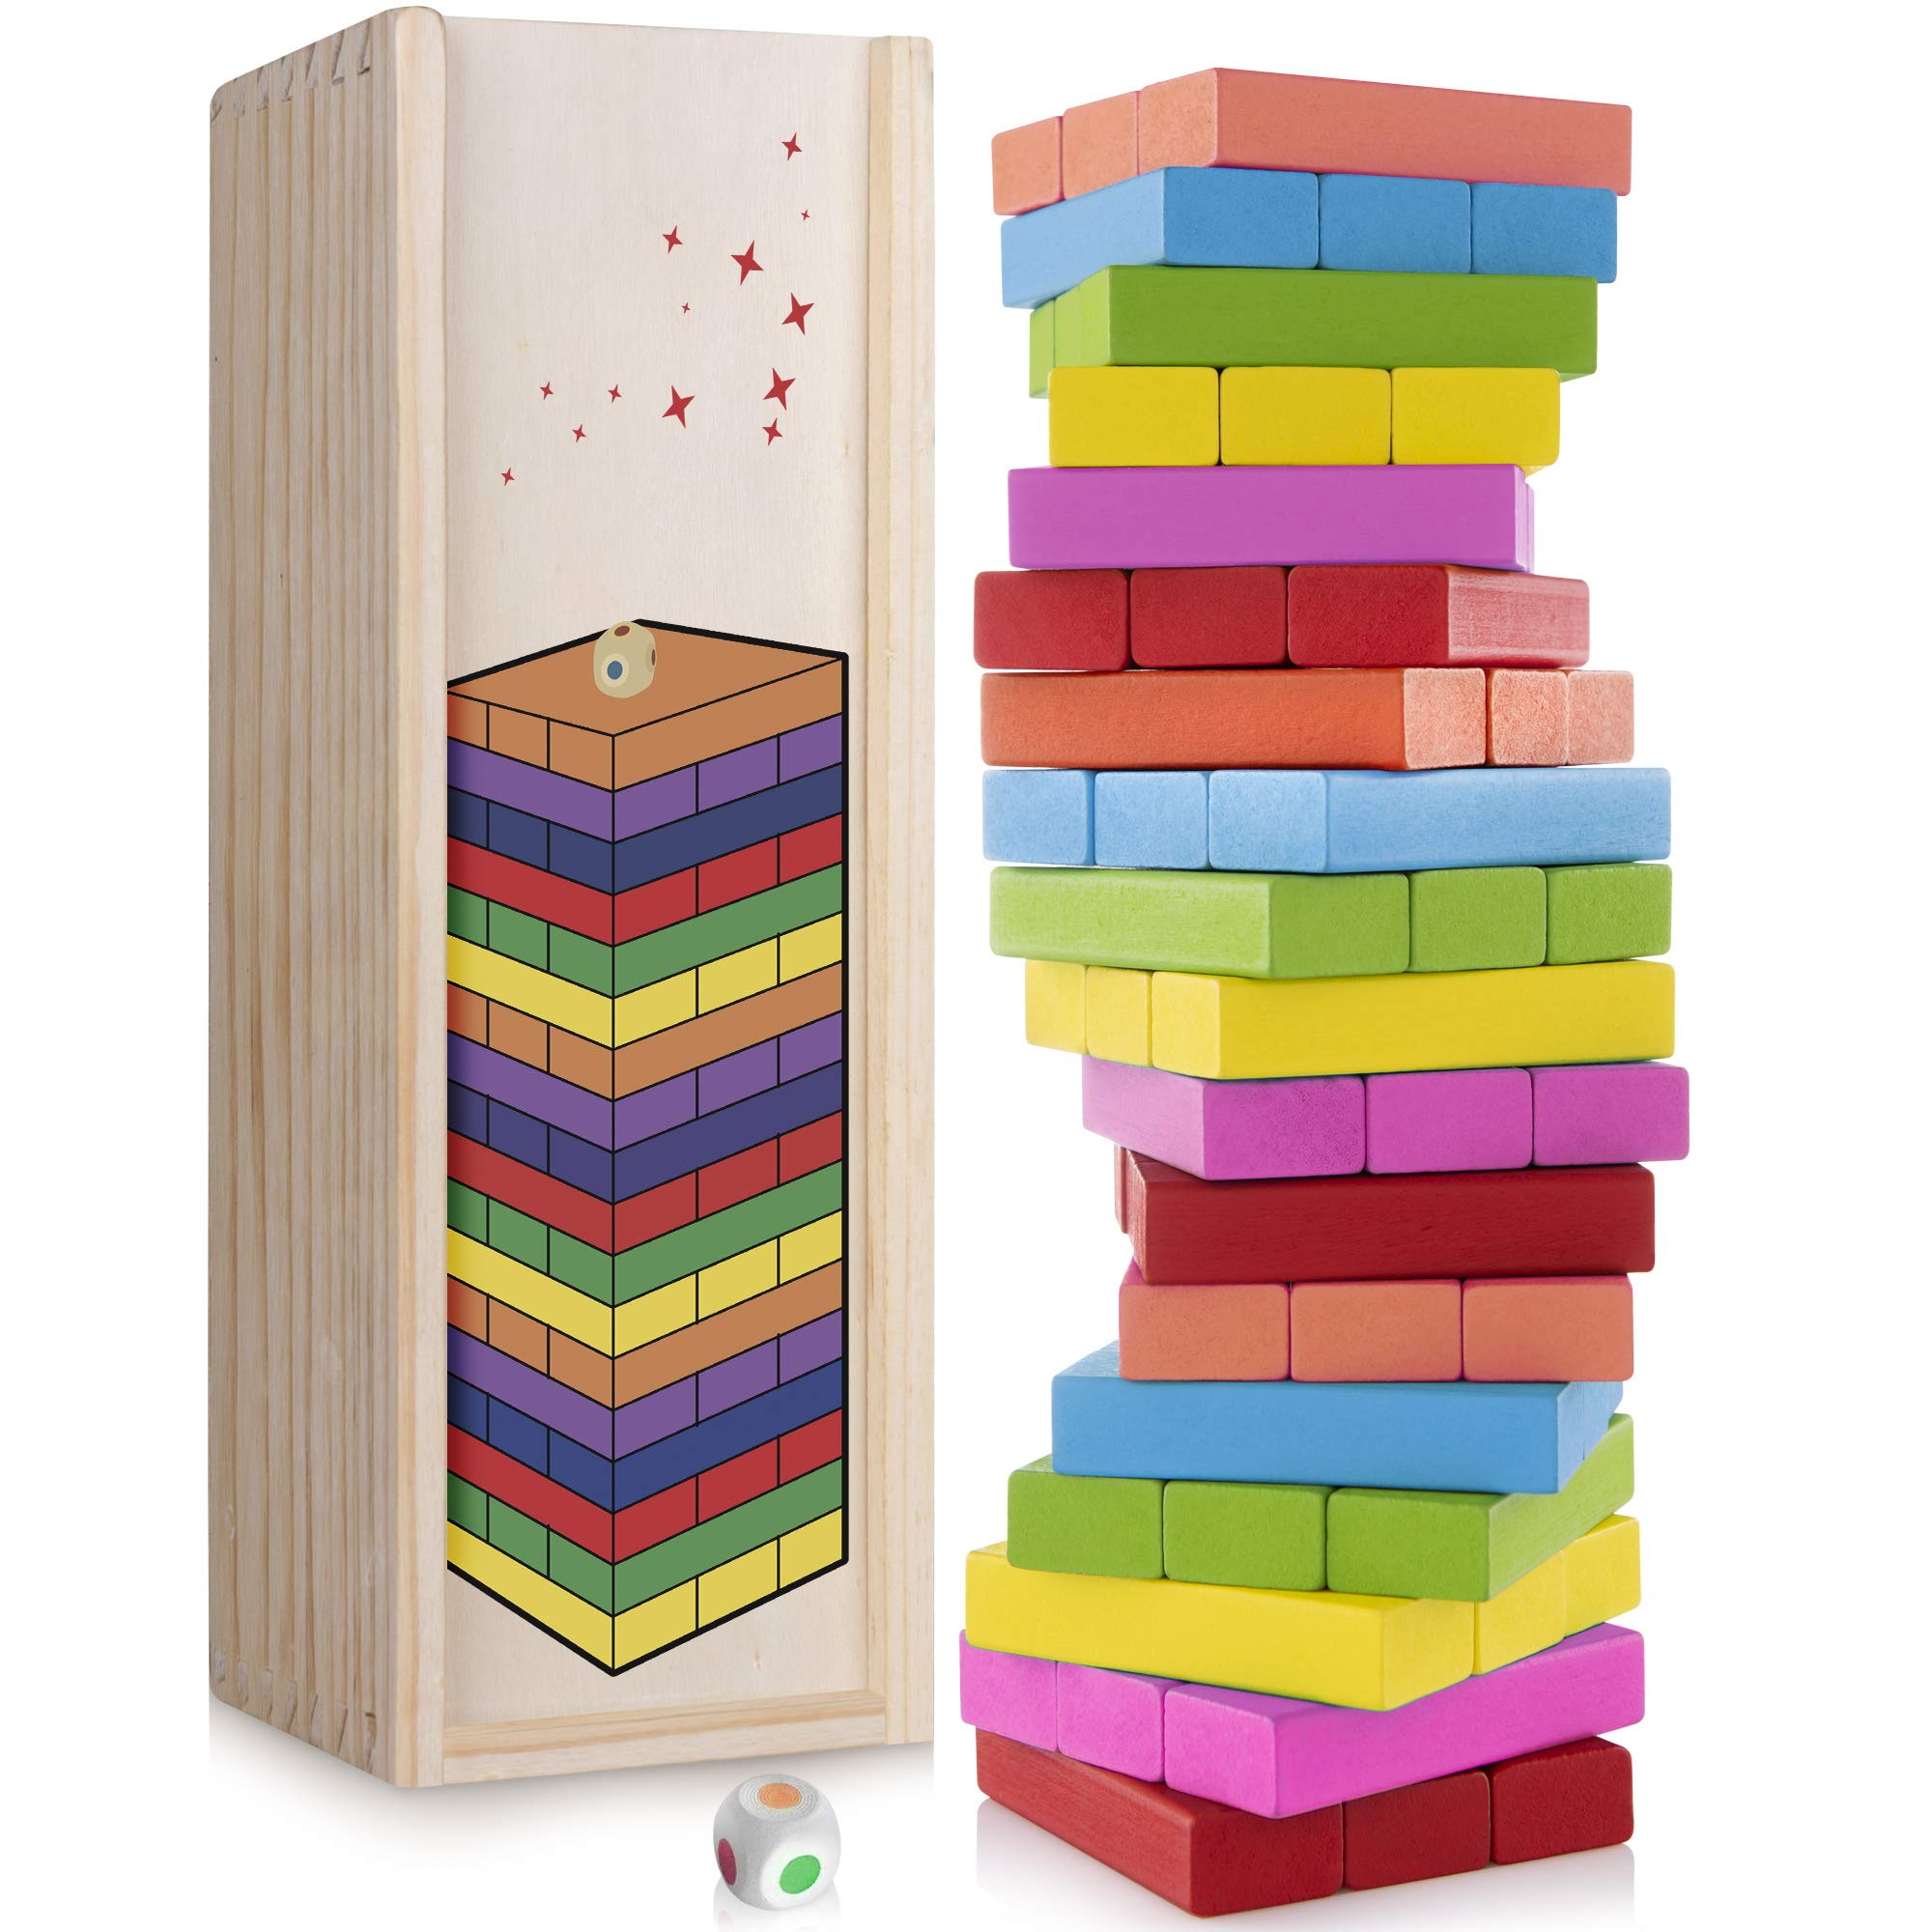 Board Game for Kids Stacking Blocks Wooden Tumbling Tower with Carrying Case DexKid